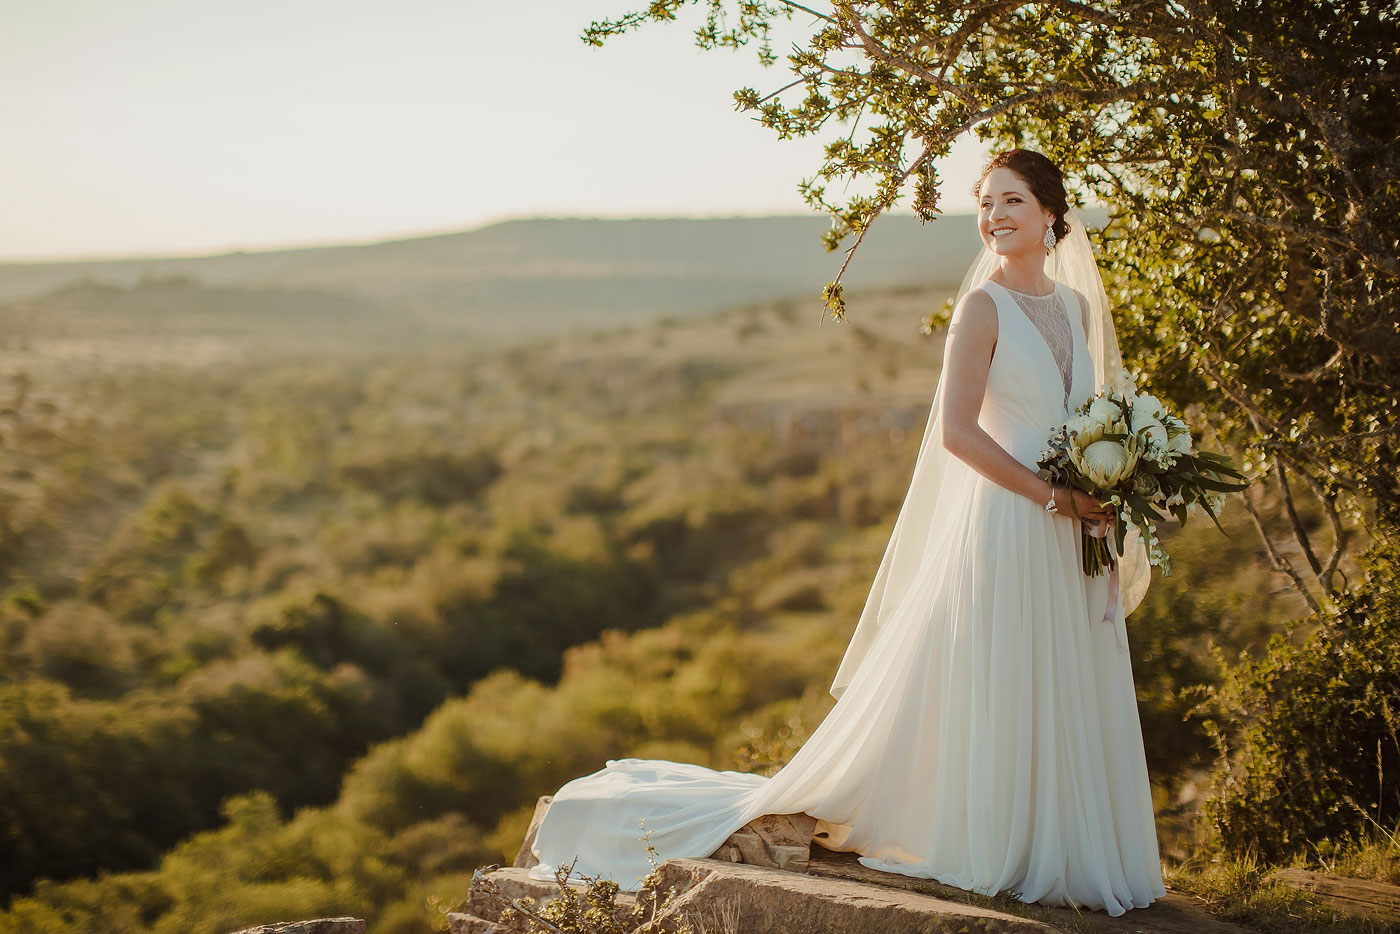 American Bride in South Africa